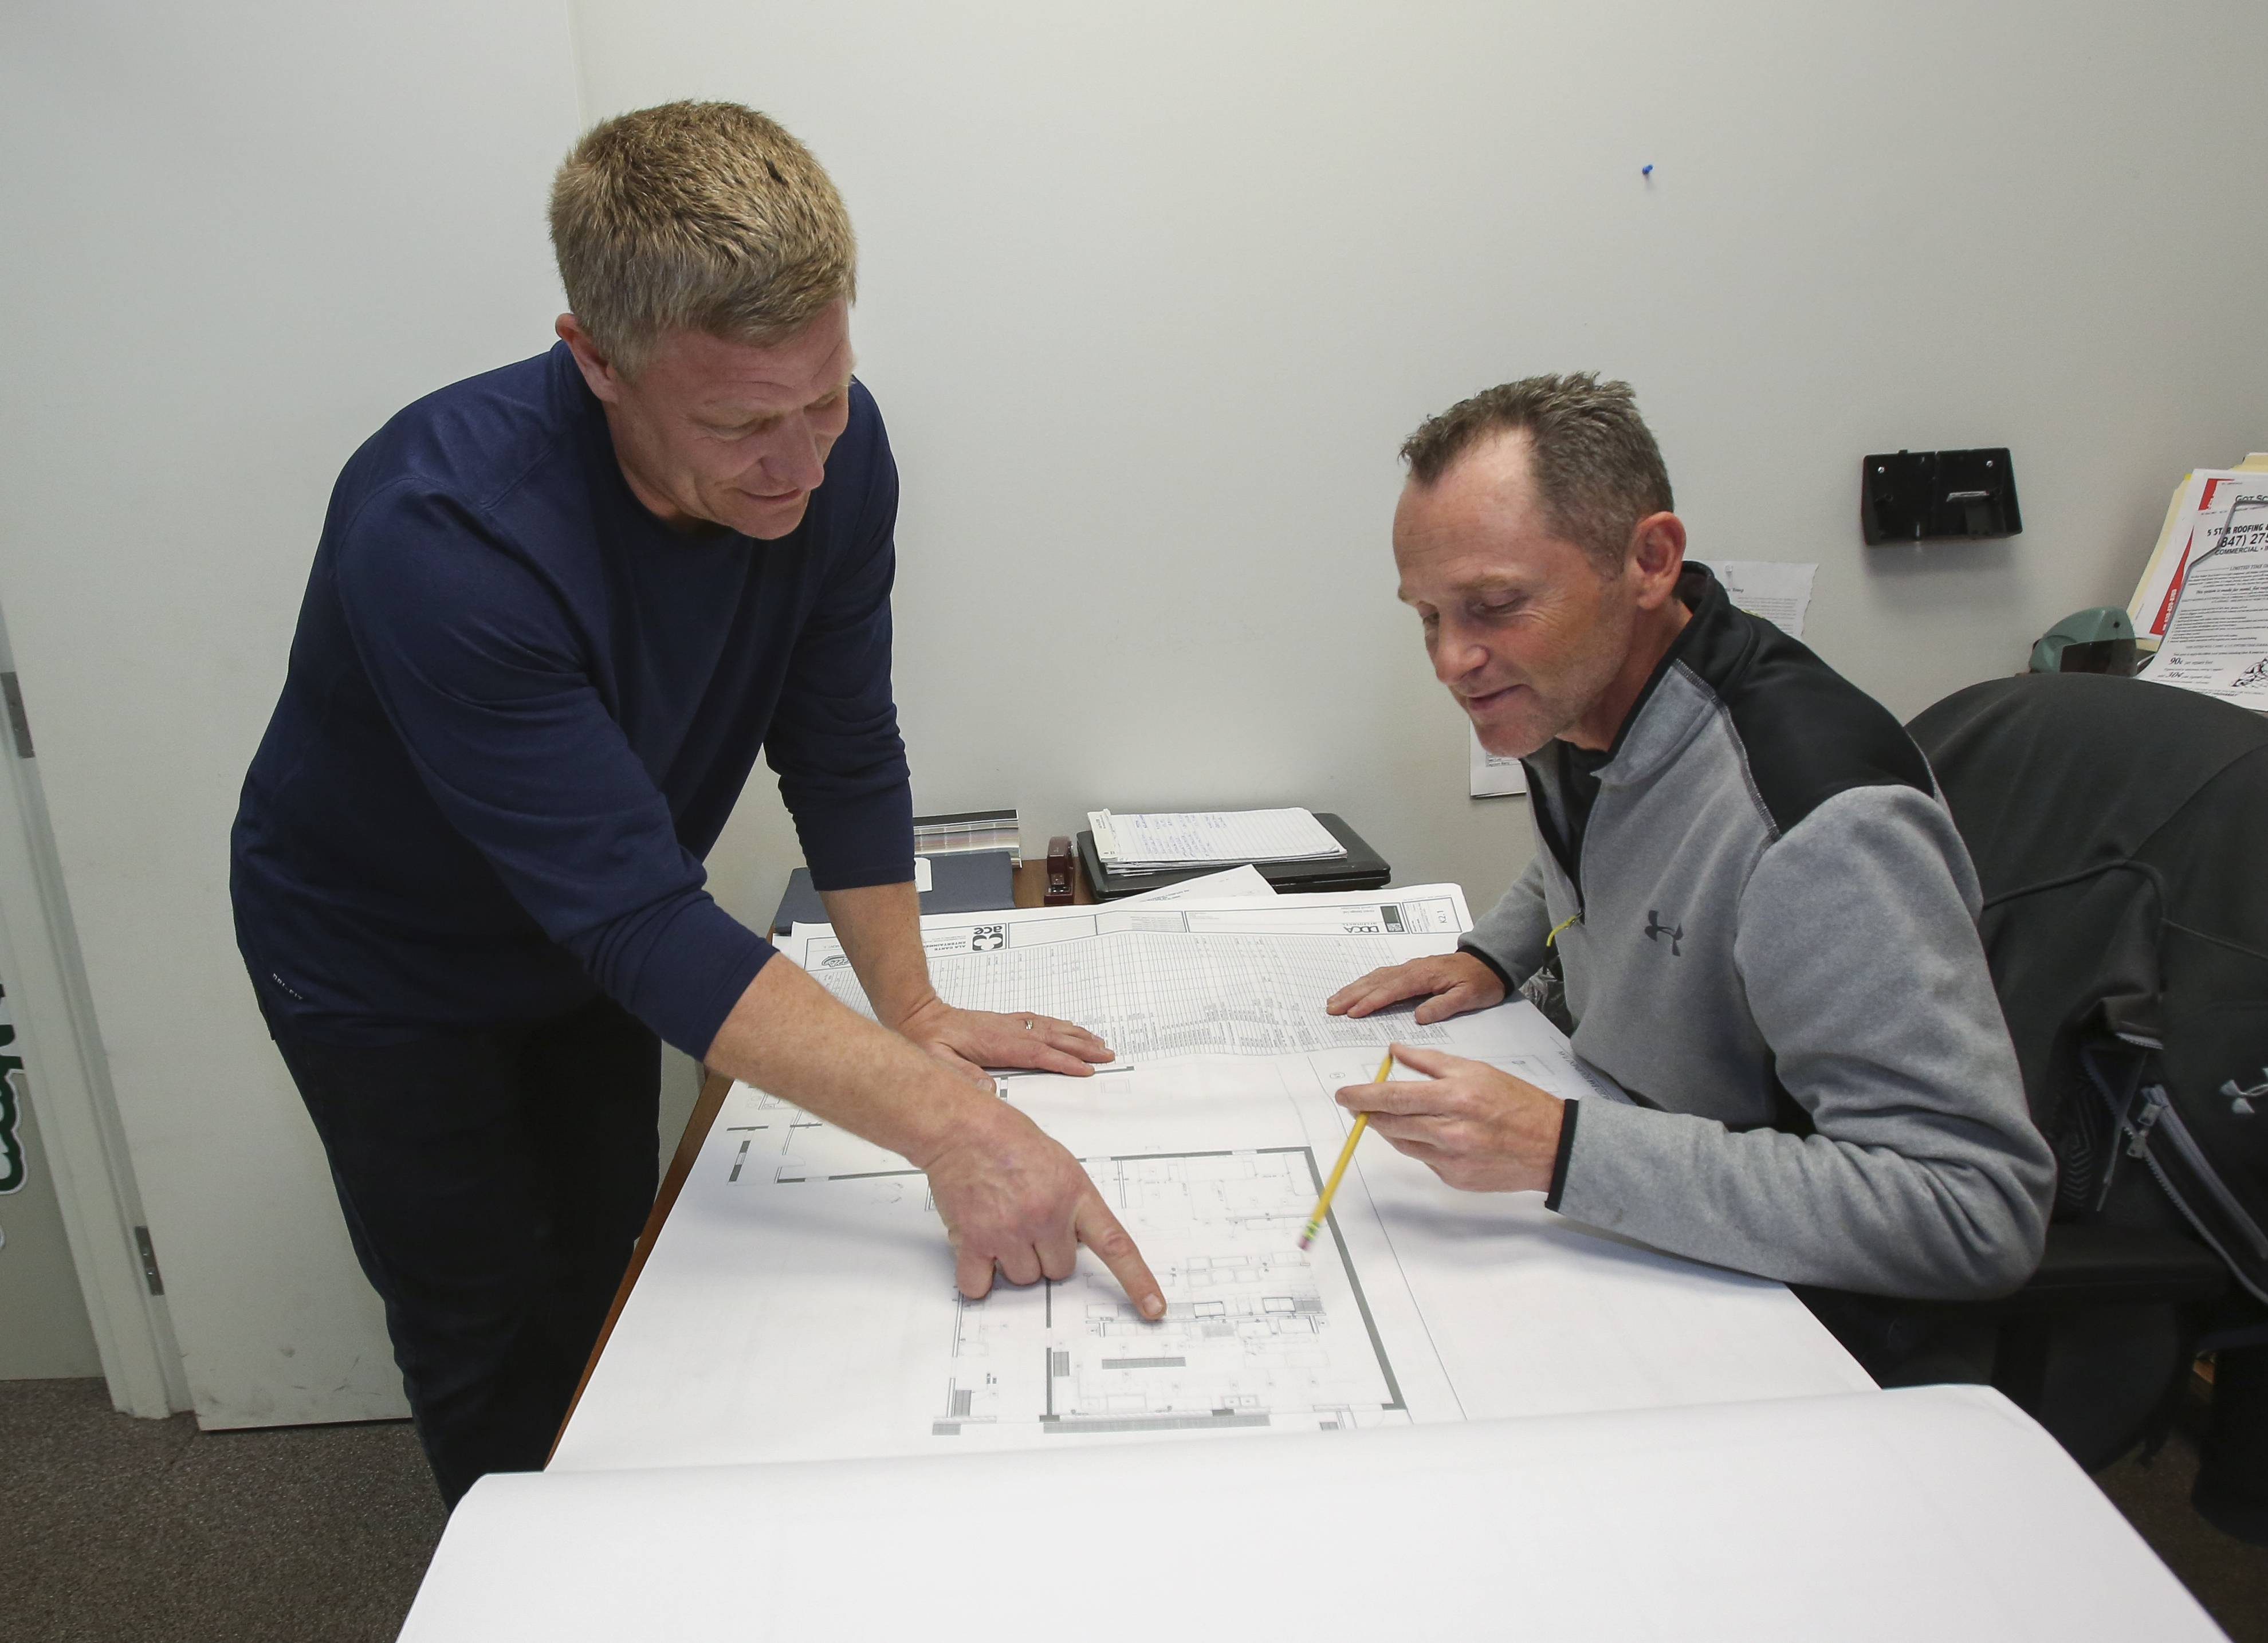 Mark Hoffmann, co-owner of Ala Carte Entertainment in Schaumburg, left, goes over plans for a new restaurant with Brian Campbell, right.